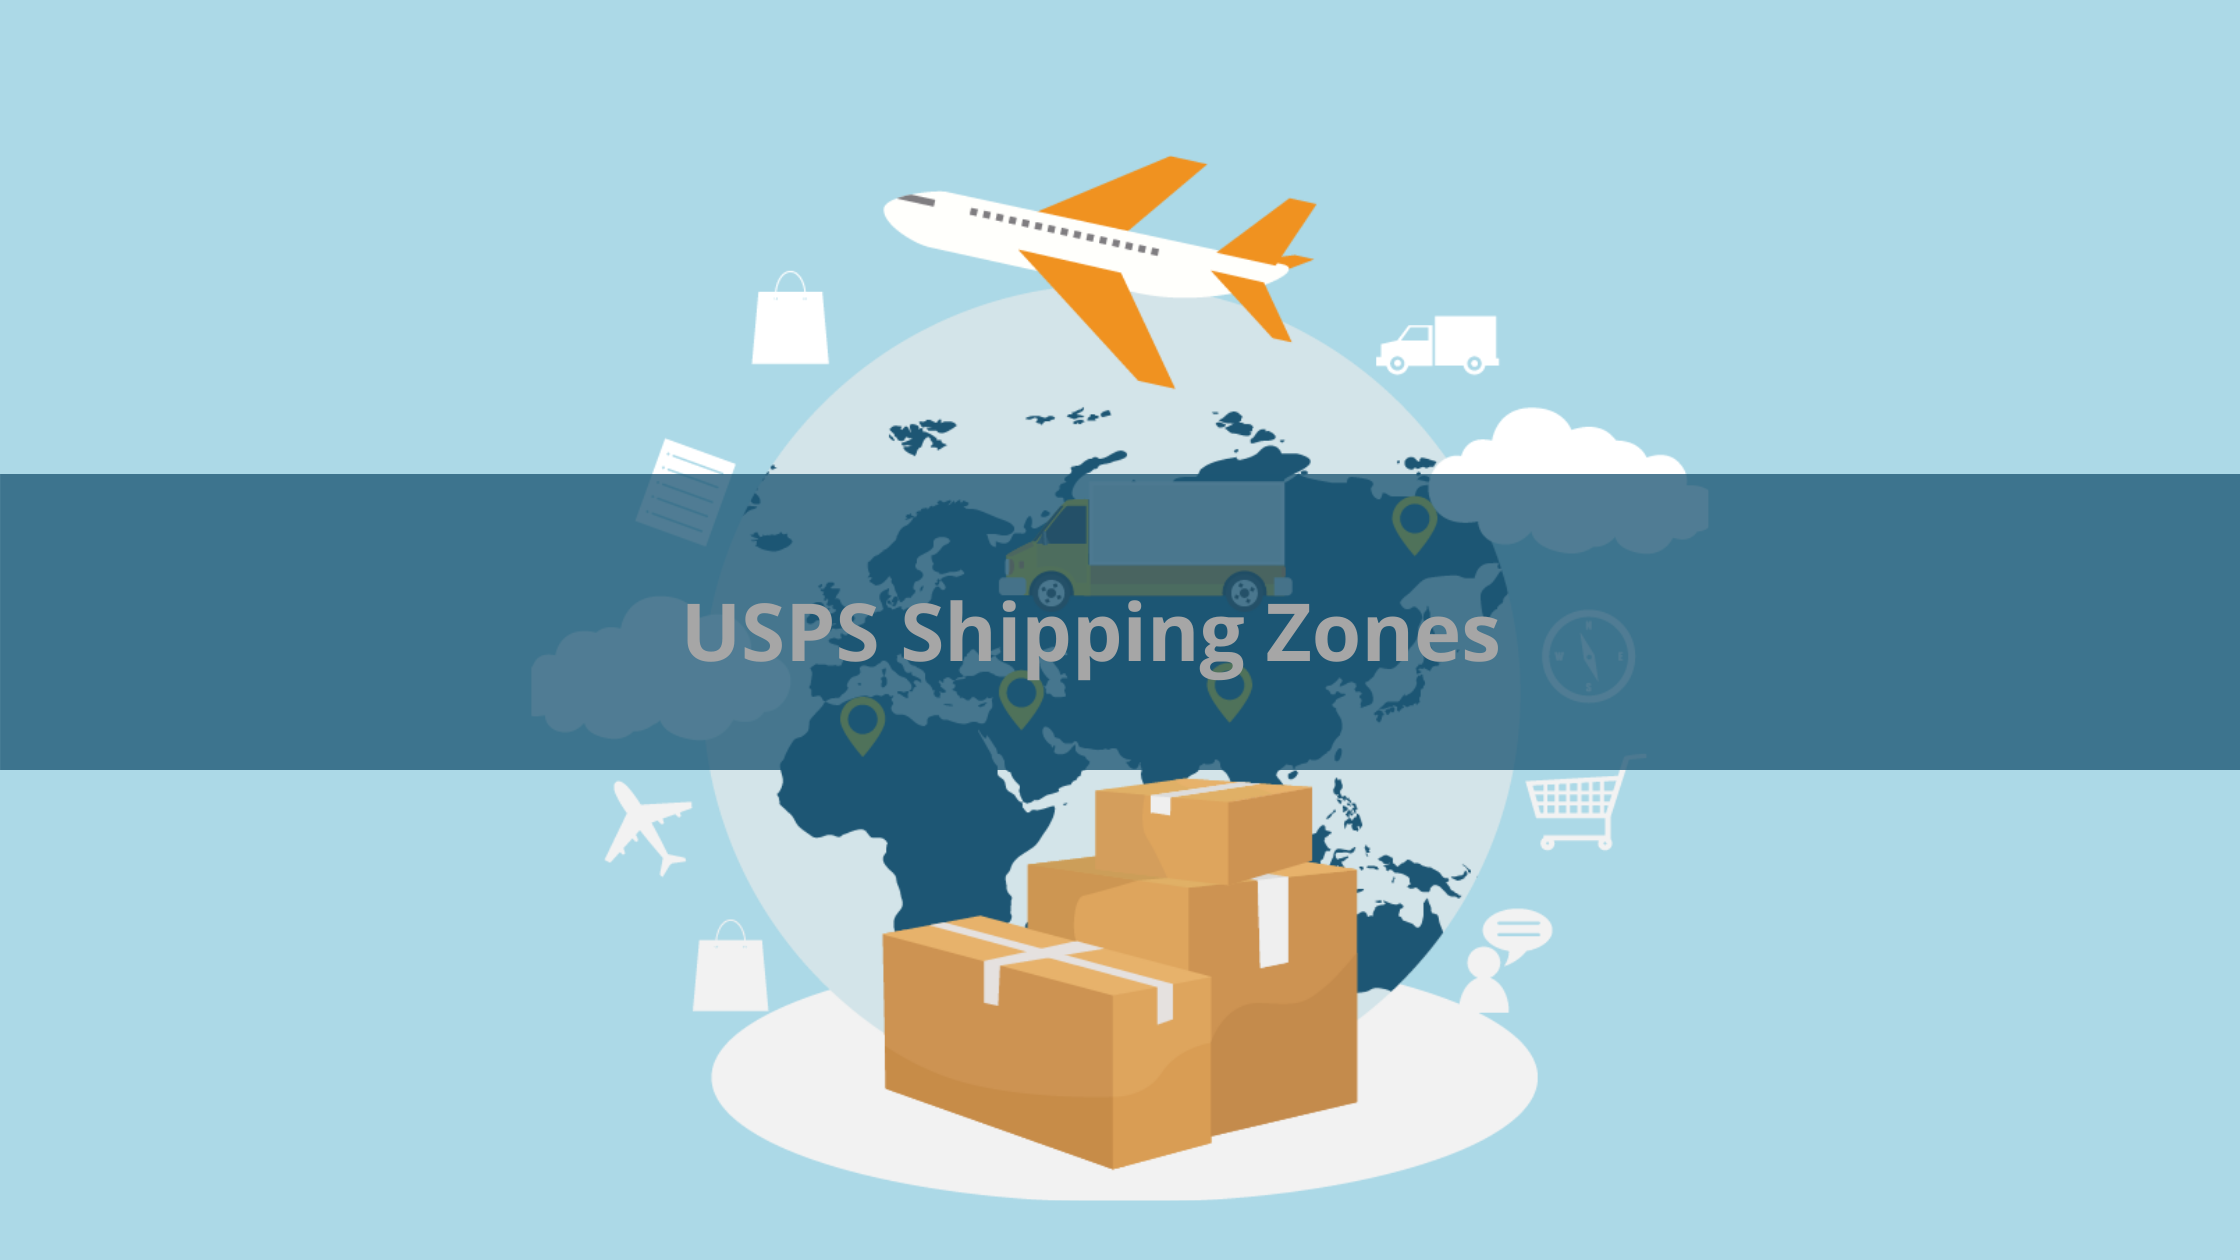 usps shipping zones